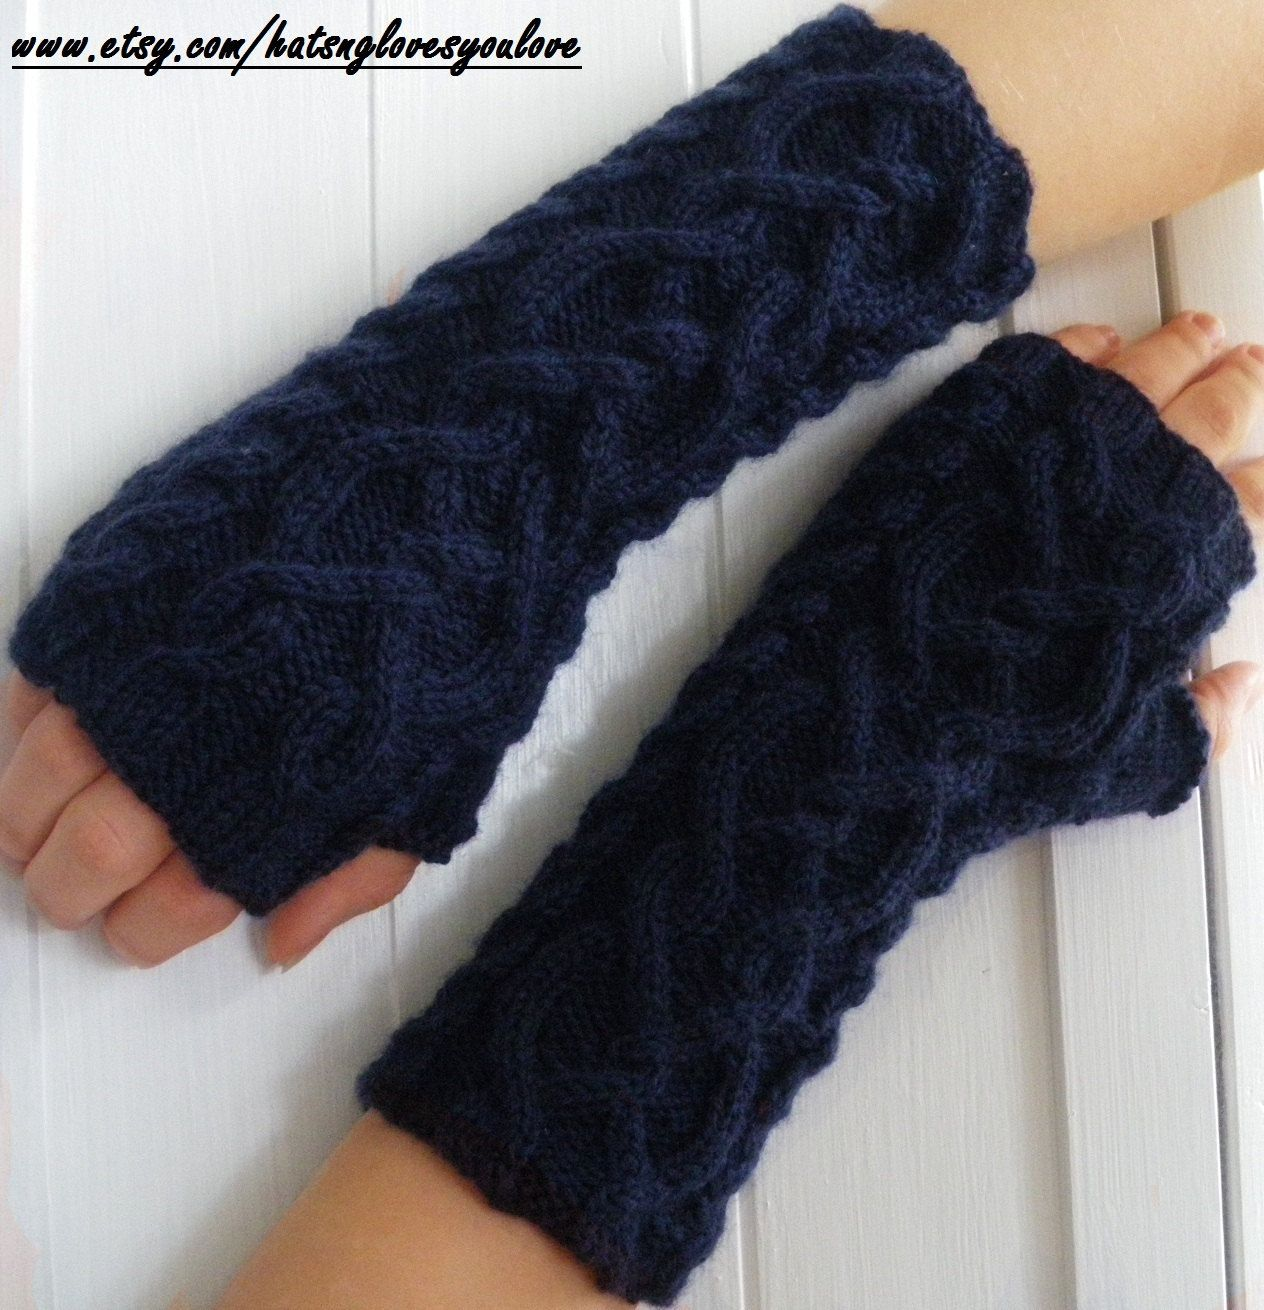 Navy Blue Knit Arm Warmers Fingerless Gloves - Cable knit In Pure ...